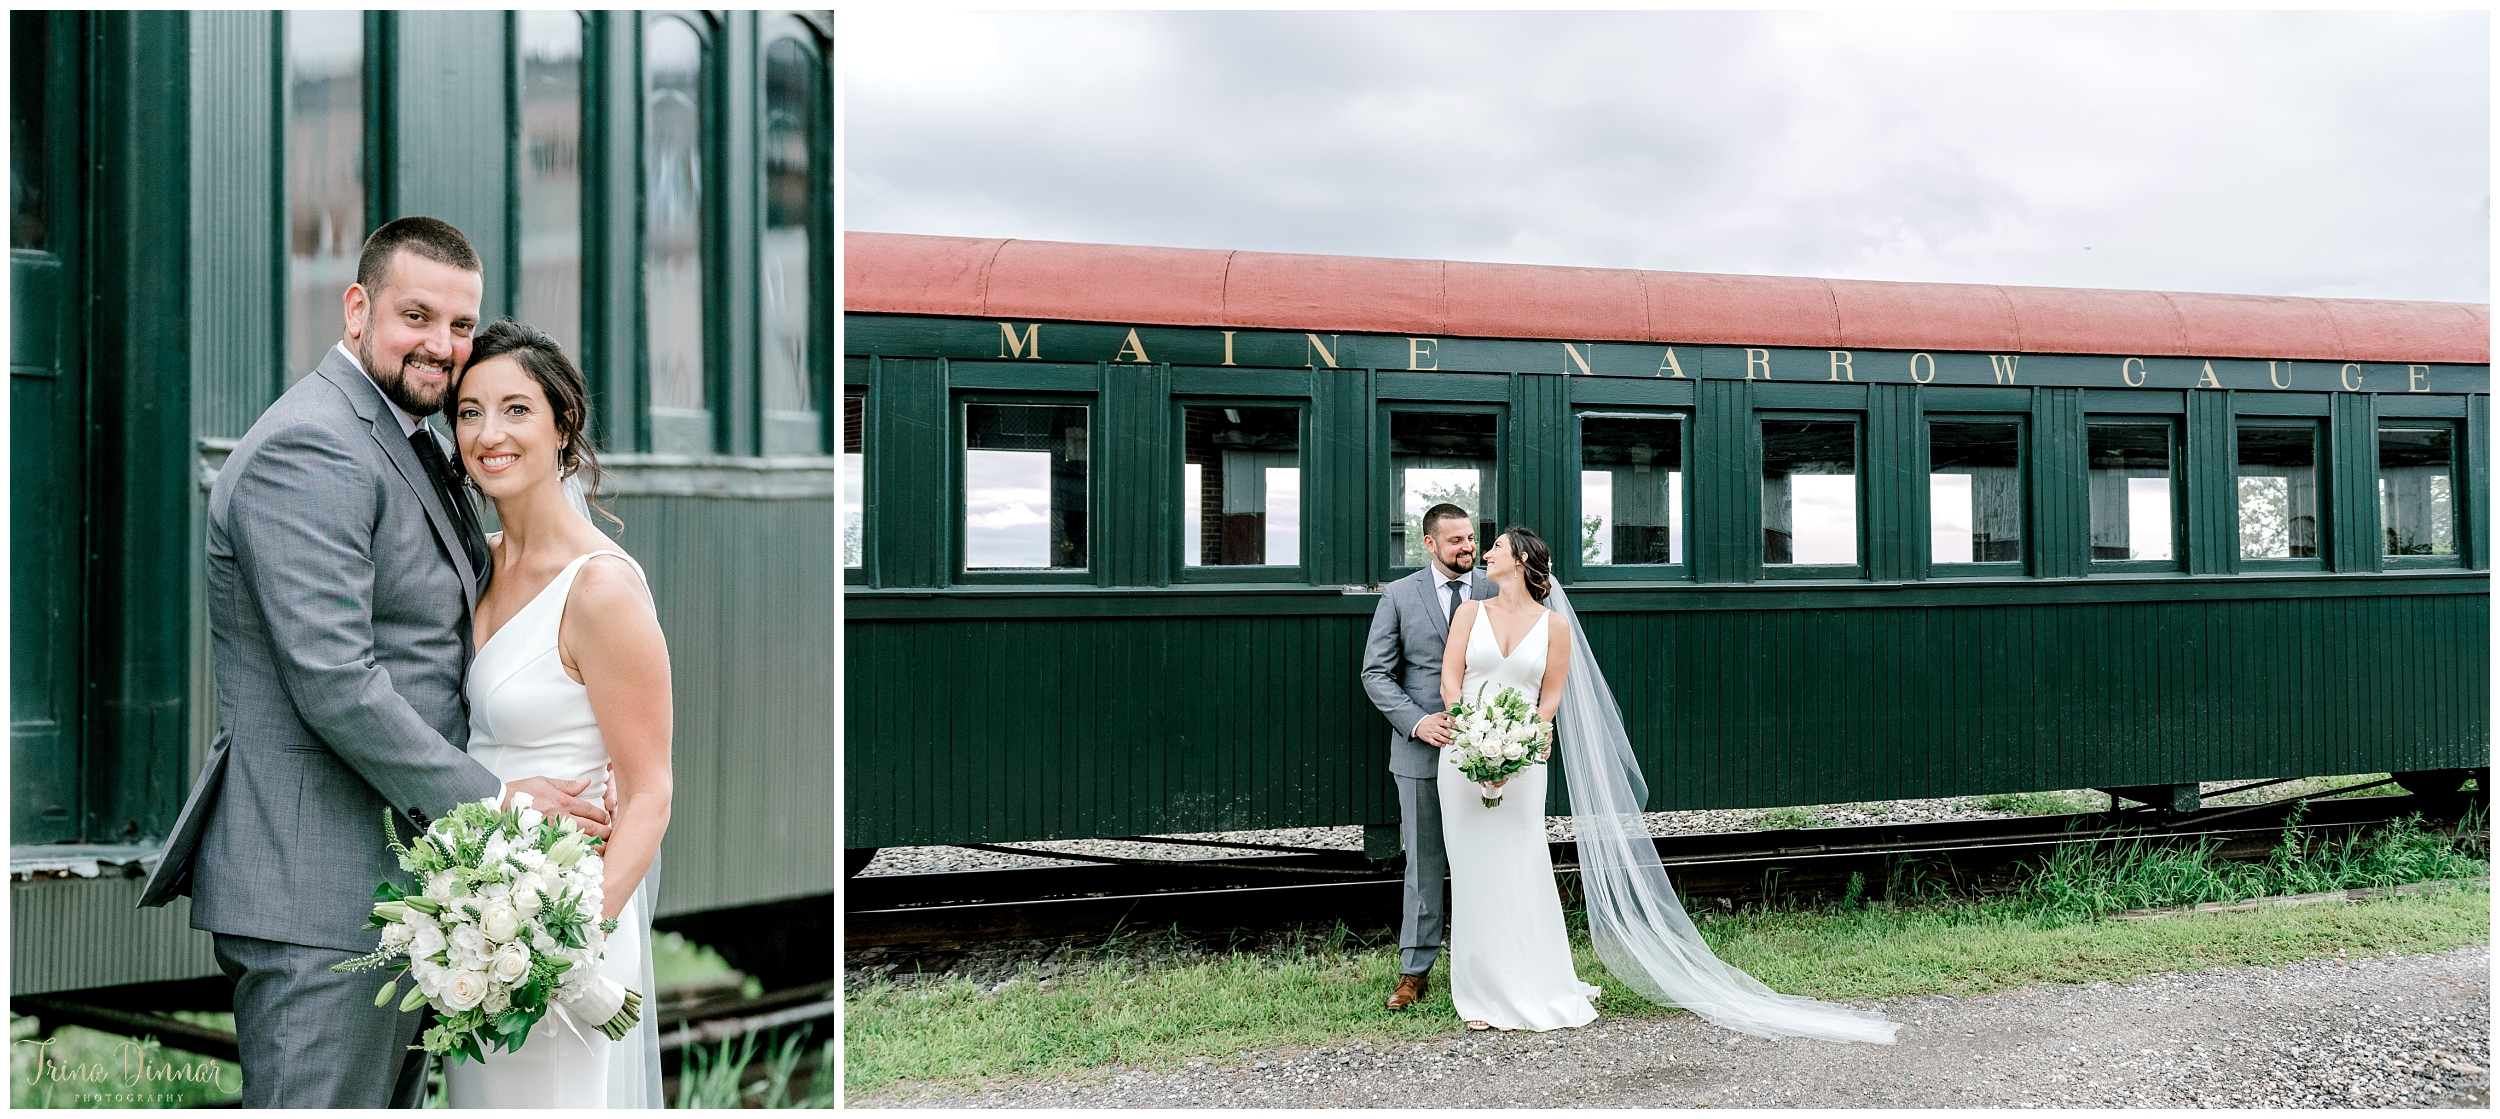 Bride and Groom portraits at the Narrow Gauge Railroad Co. & Museum in Portland, Maine.